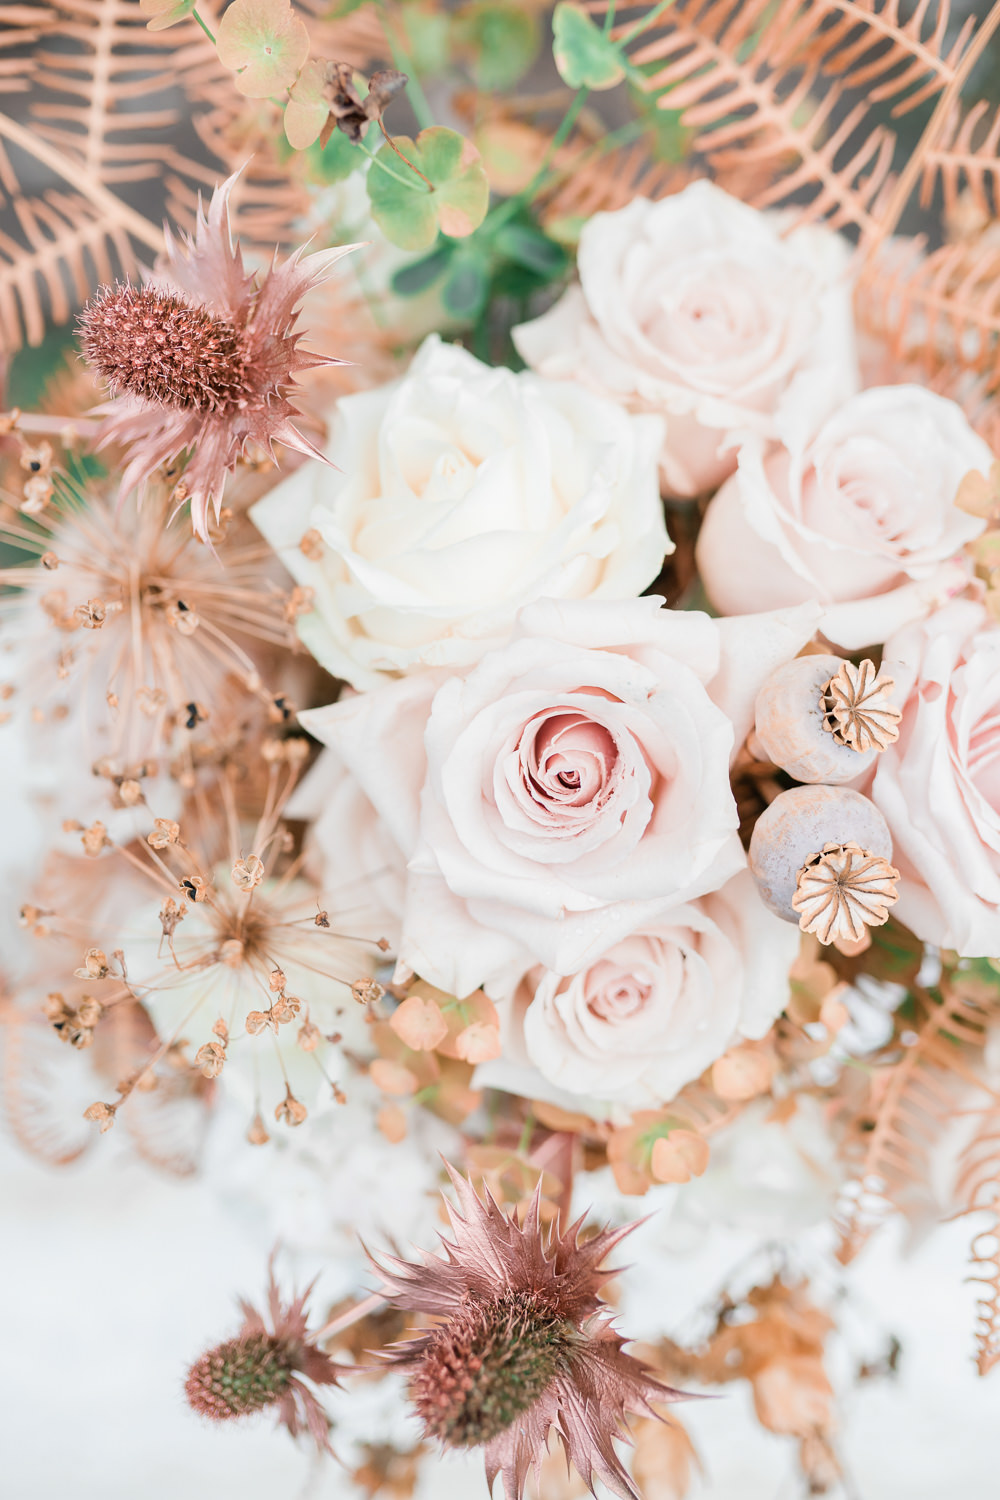 Flowers Rose Pale Pink Seed Heads Thistle Golden Autumnal Wedding Ideas Joanna Briggs Photography